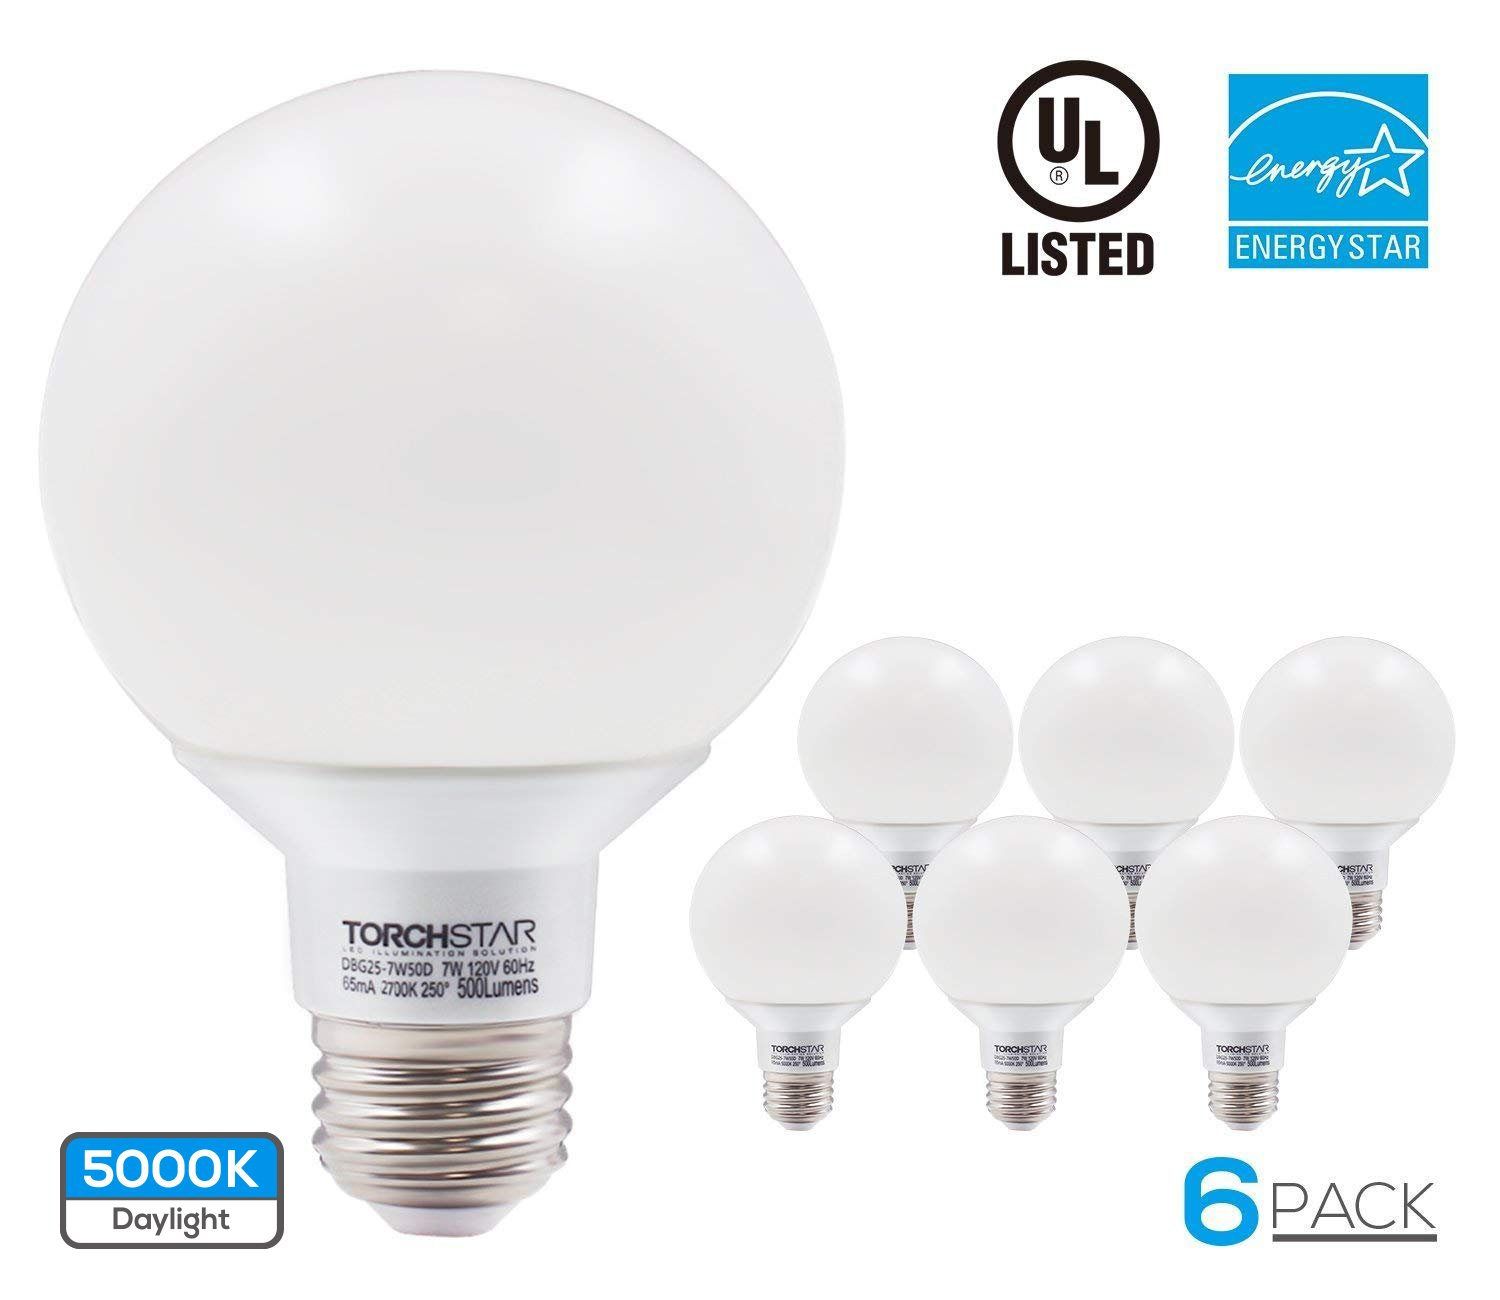 G25 Globe led Bulb Dimmable 7W 60W Equiv, Vanity Style Daylight 5000K for Makeup, Pendant, Bathroom, Dressing Room Decorative Light, 3 YEAR WARRANTY, Pack of 6